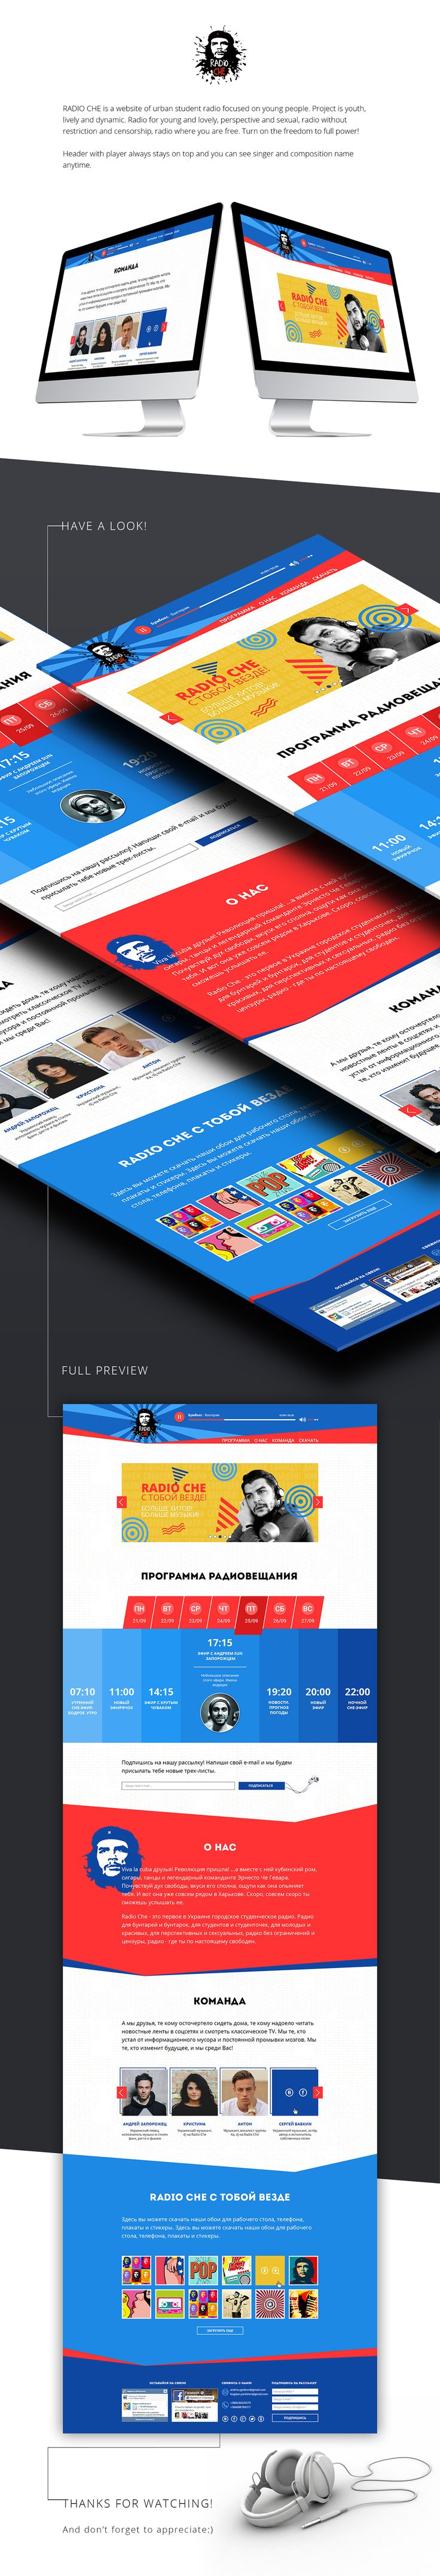 Radio Che Landing page on Behance